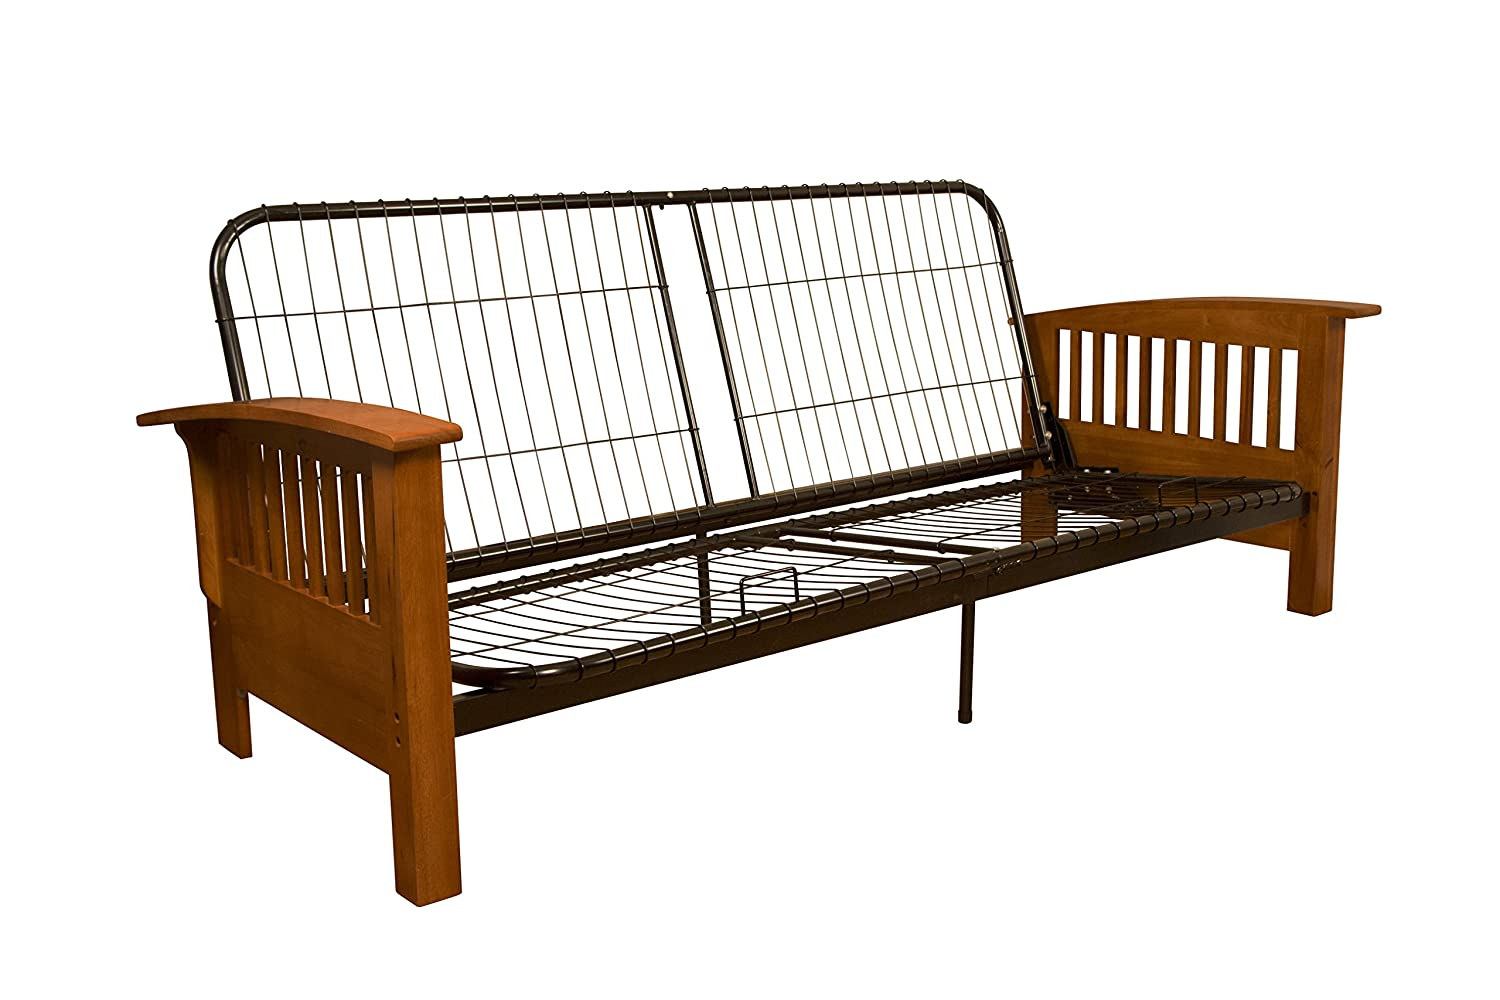 Brentwood Mission-Style Futon Sofa Sleeper Bed Frame, Queen-size, Mahogany Arm Finish Epic Furnishings NanBreGdQnMah